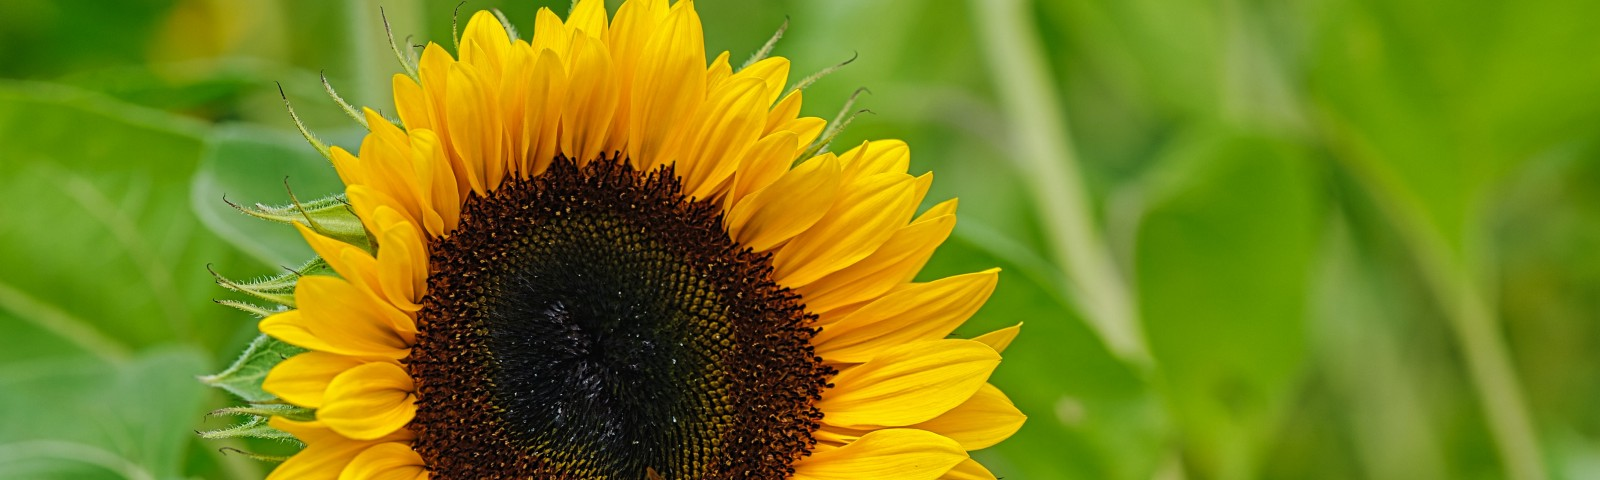 A large sunflower with a bee inside.